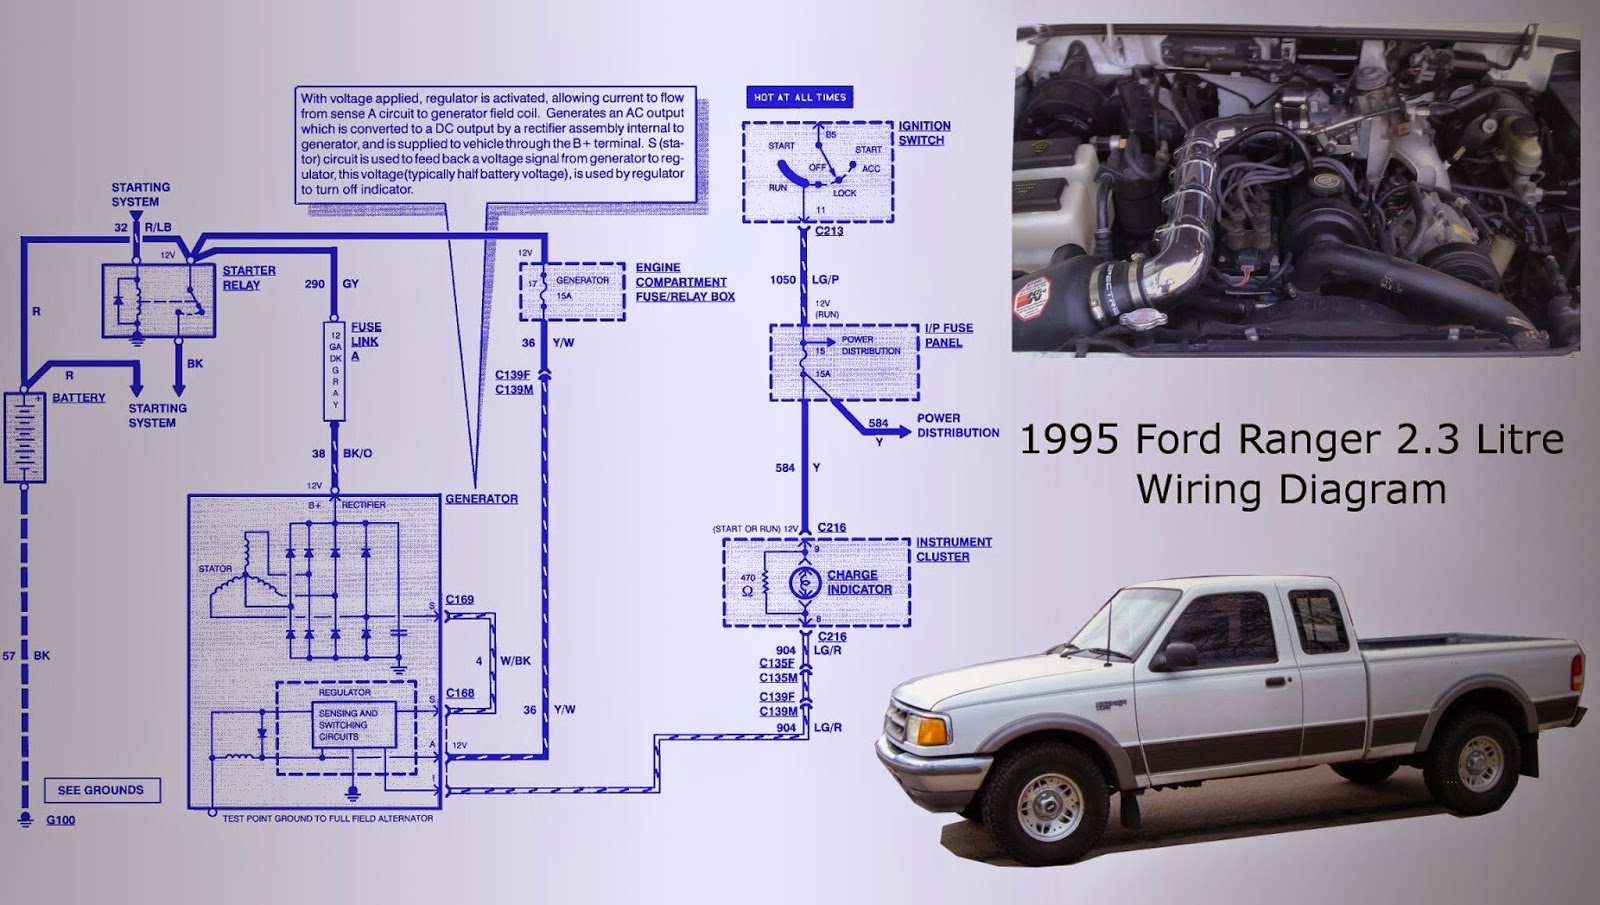 Diagram 1990 Ford Ranger 2 3 Wiring Diagram Full Version Hd Quality Wiring Diagram Pvdiagramsrigbyj Gisbertovalori It